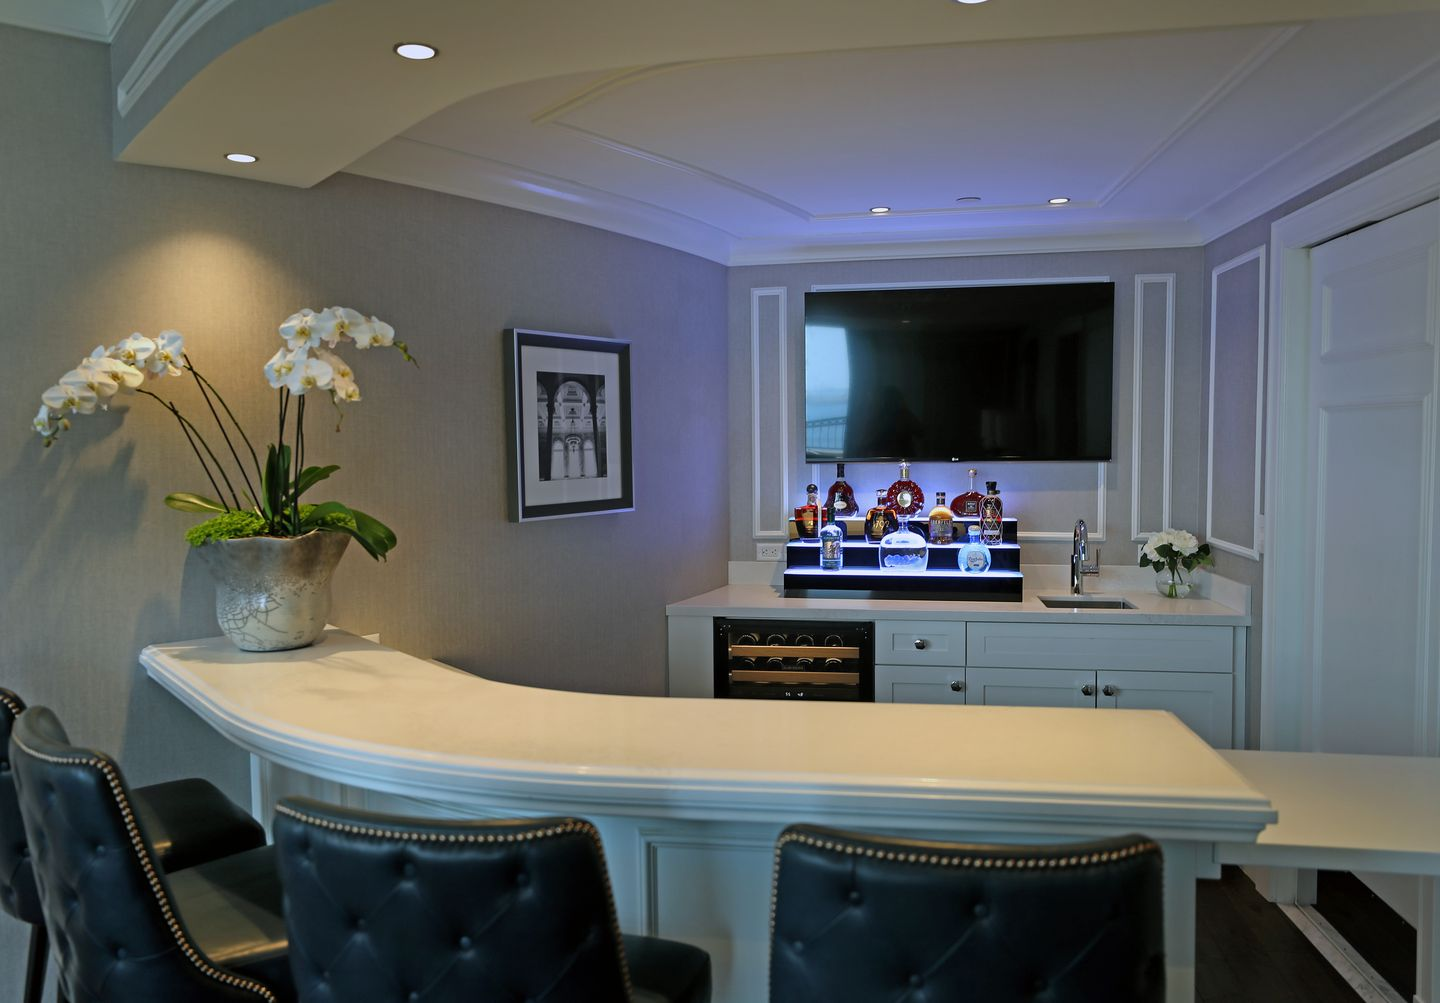 The private bar in hotel room.